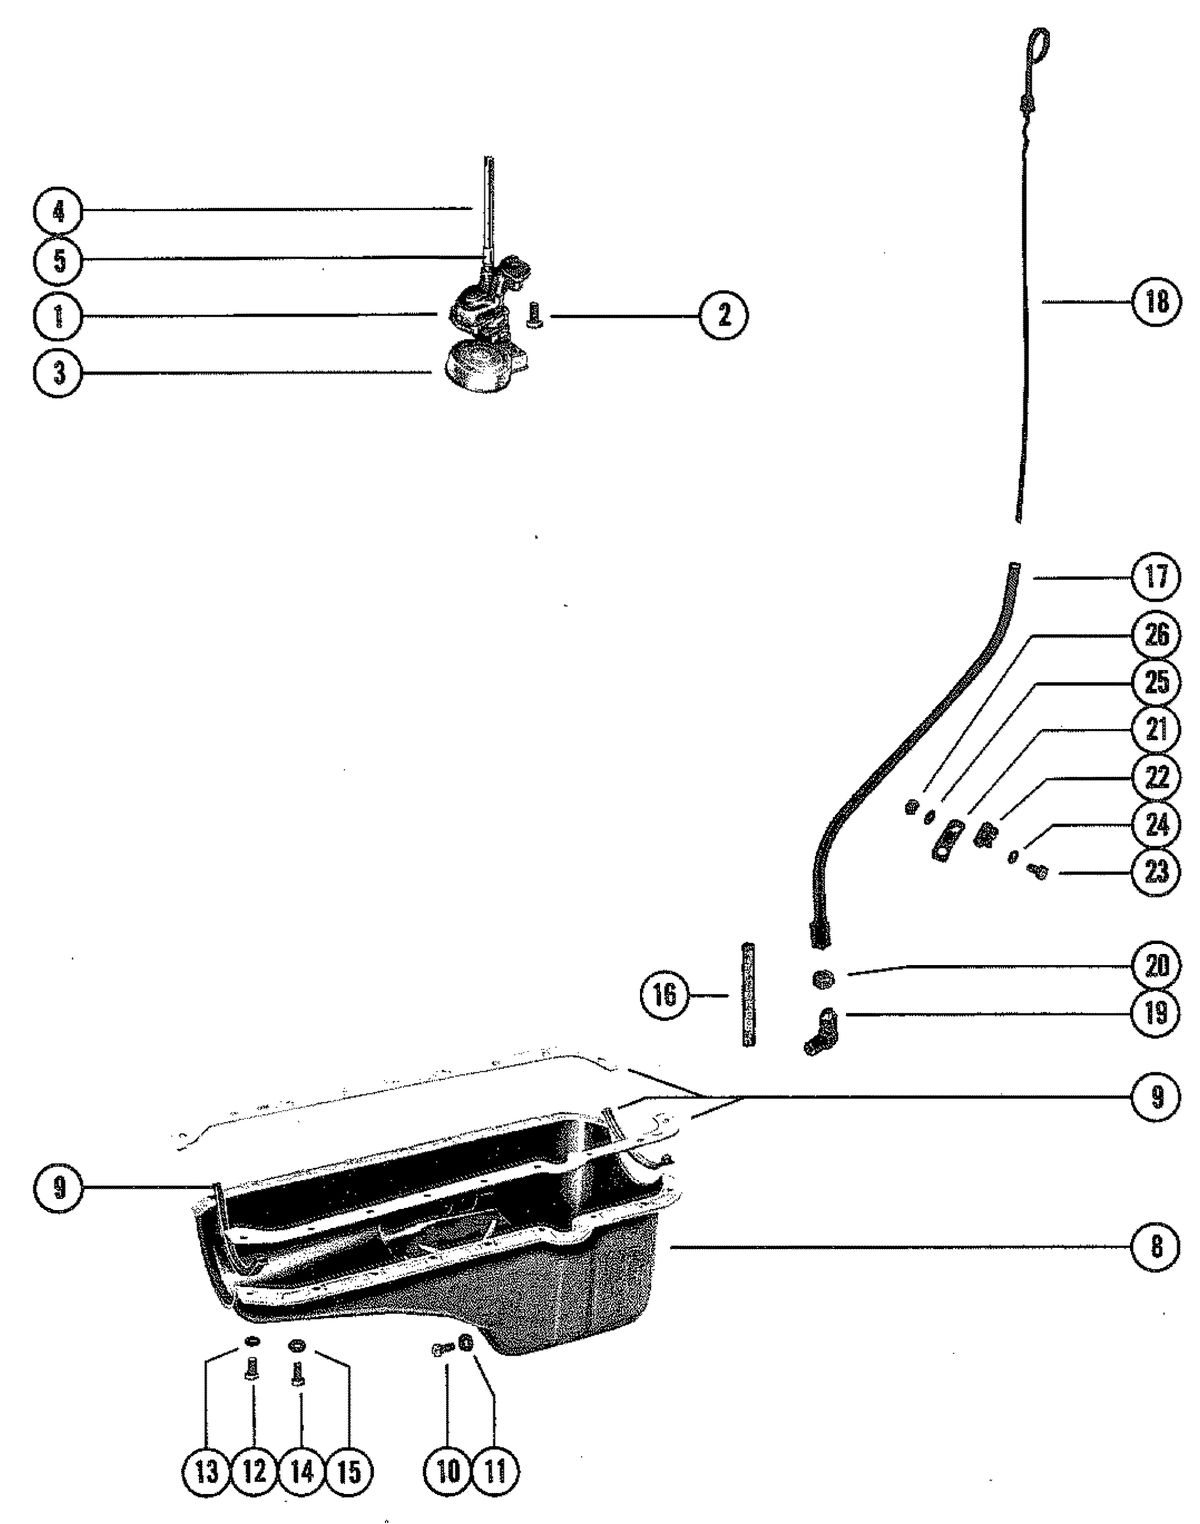 MERCRUISER 898 (STERN DRIVE) 198 (INBOARD) ENGINE OIL PAN AND OIL PUMP